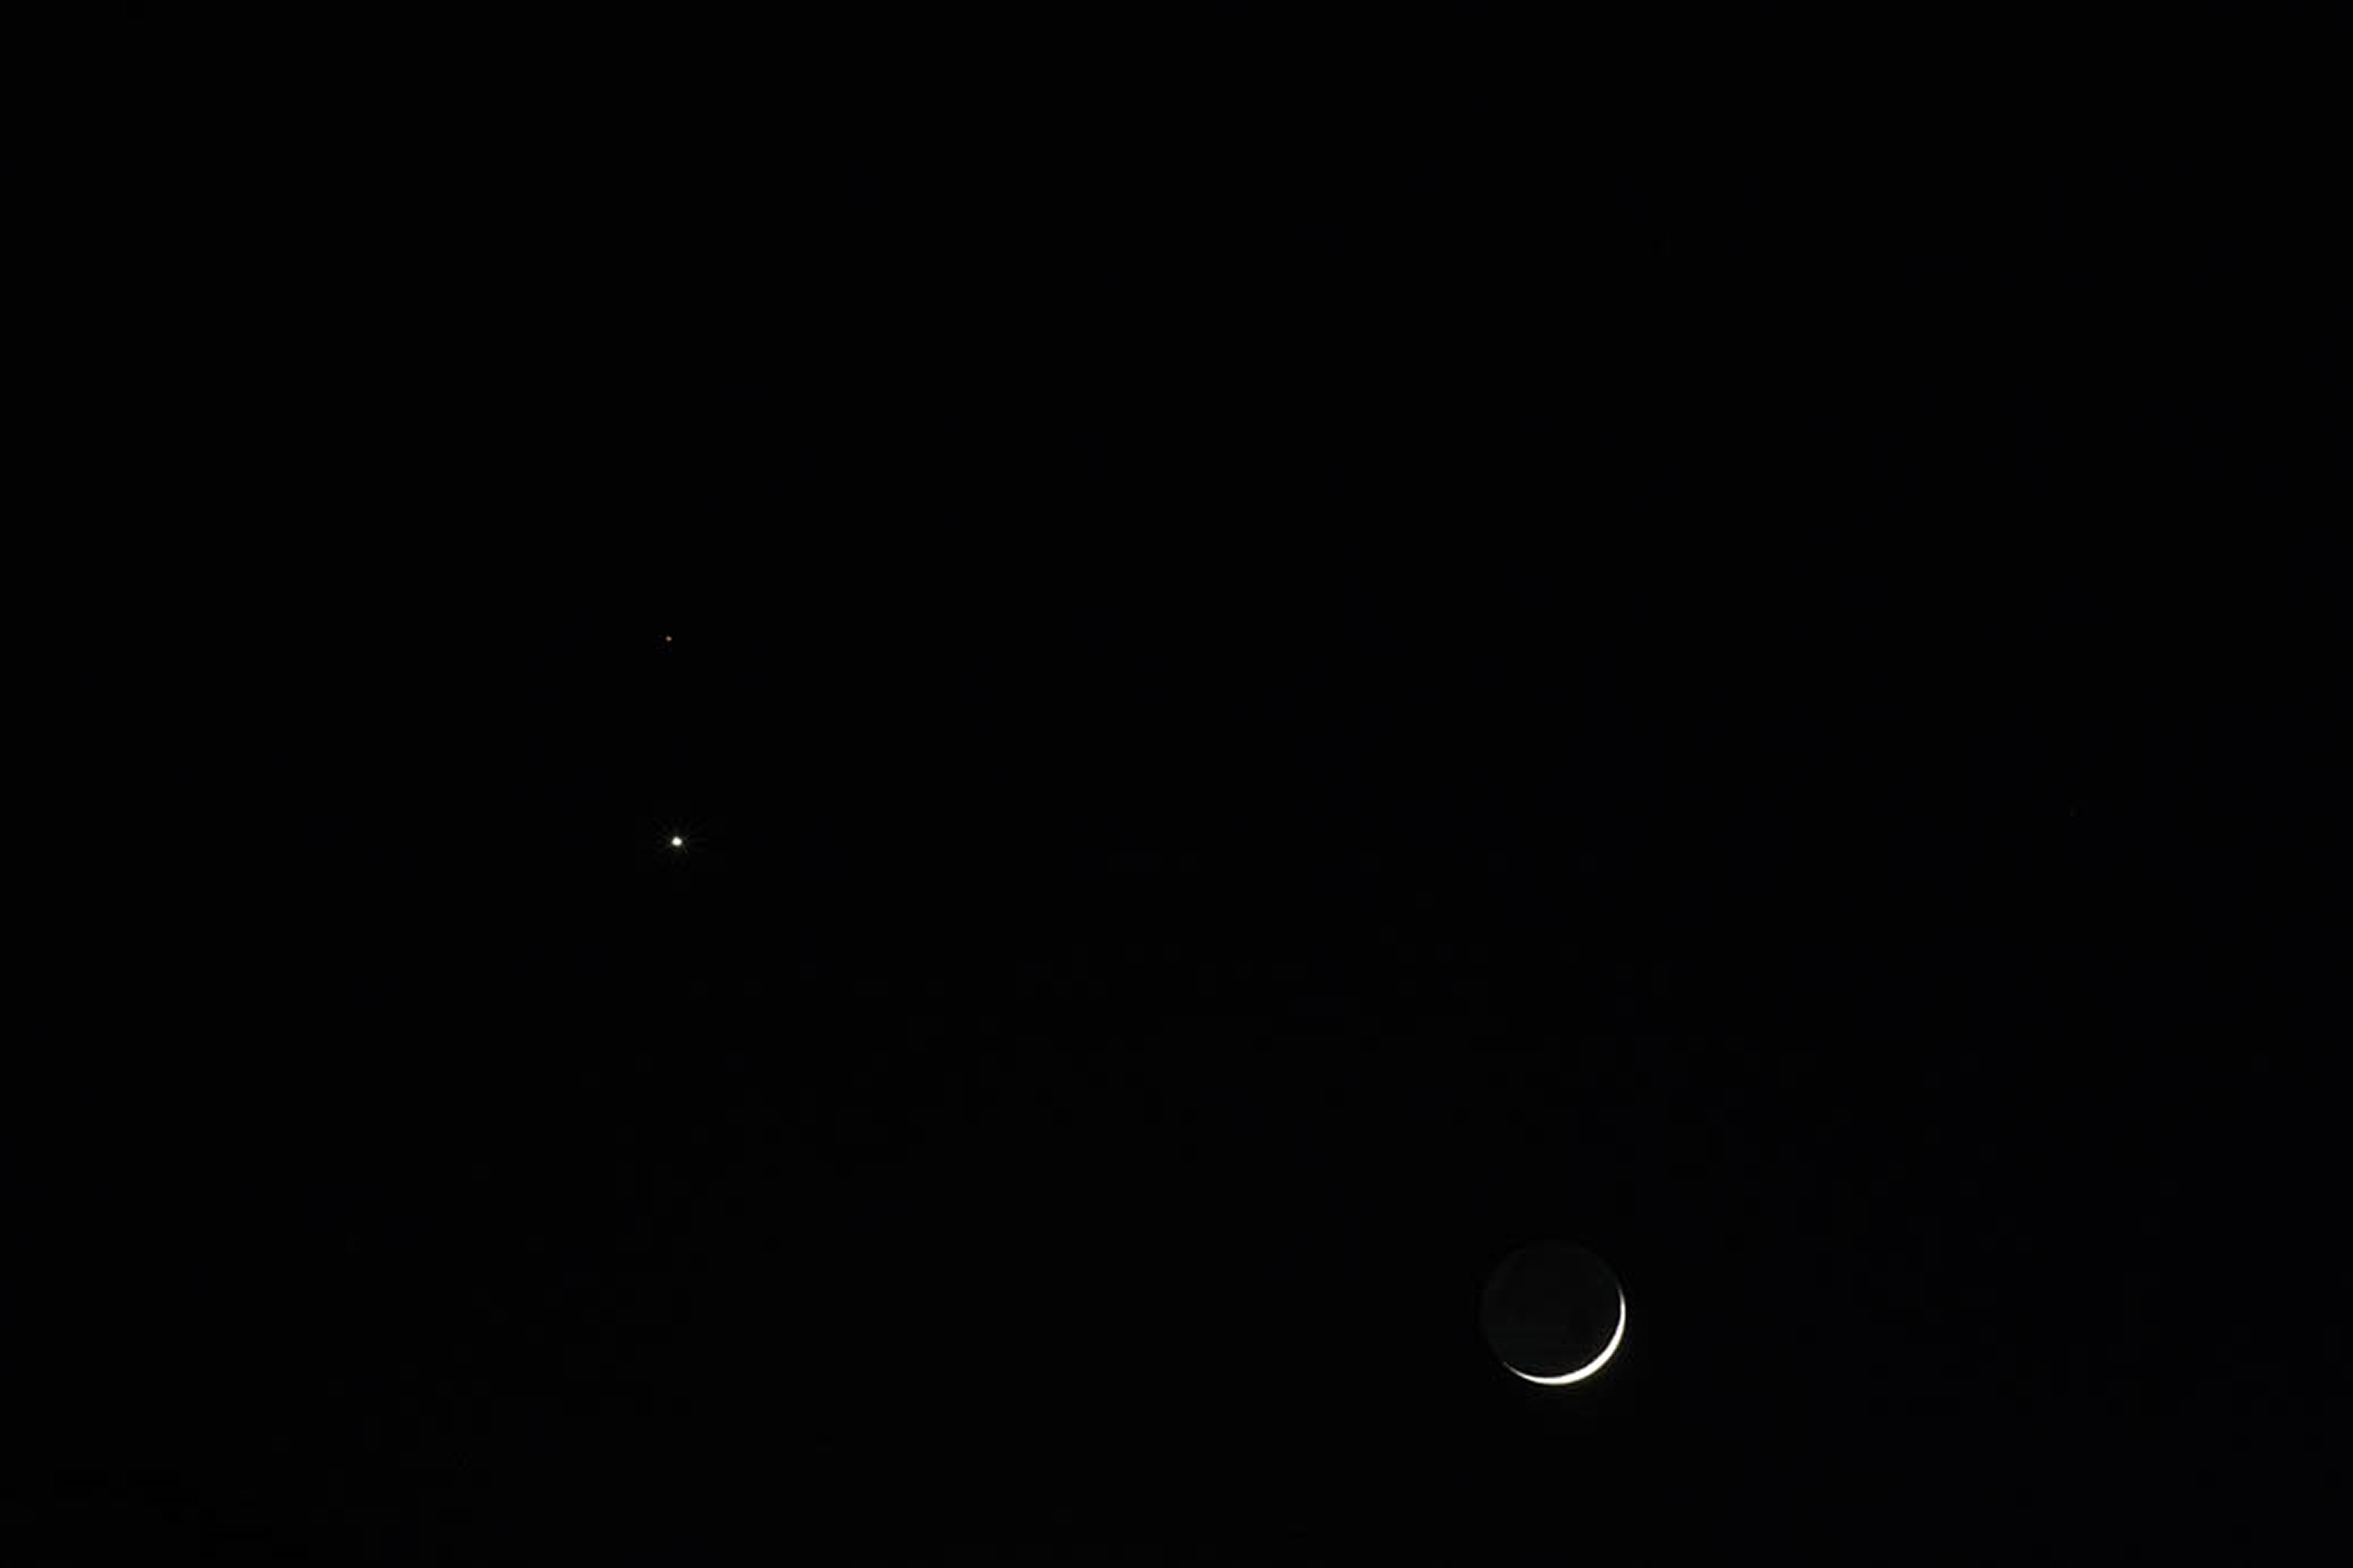 Mars, venus and the Moon By Tony Hayes.  20th February 18.49 UT Year unknown, Canon EOS 1200D. f/22 ISO-6400 1.6 second exposure time. Brightness & contrast adjusted in Photoshop